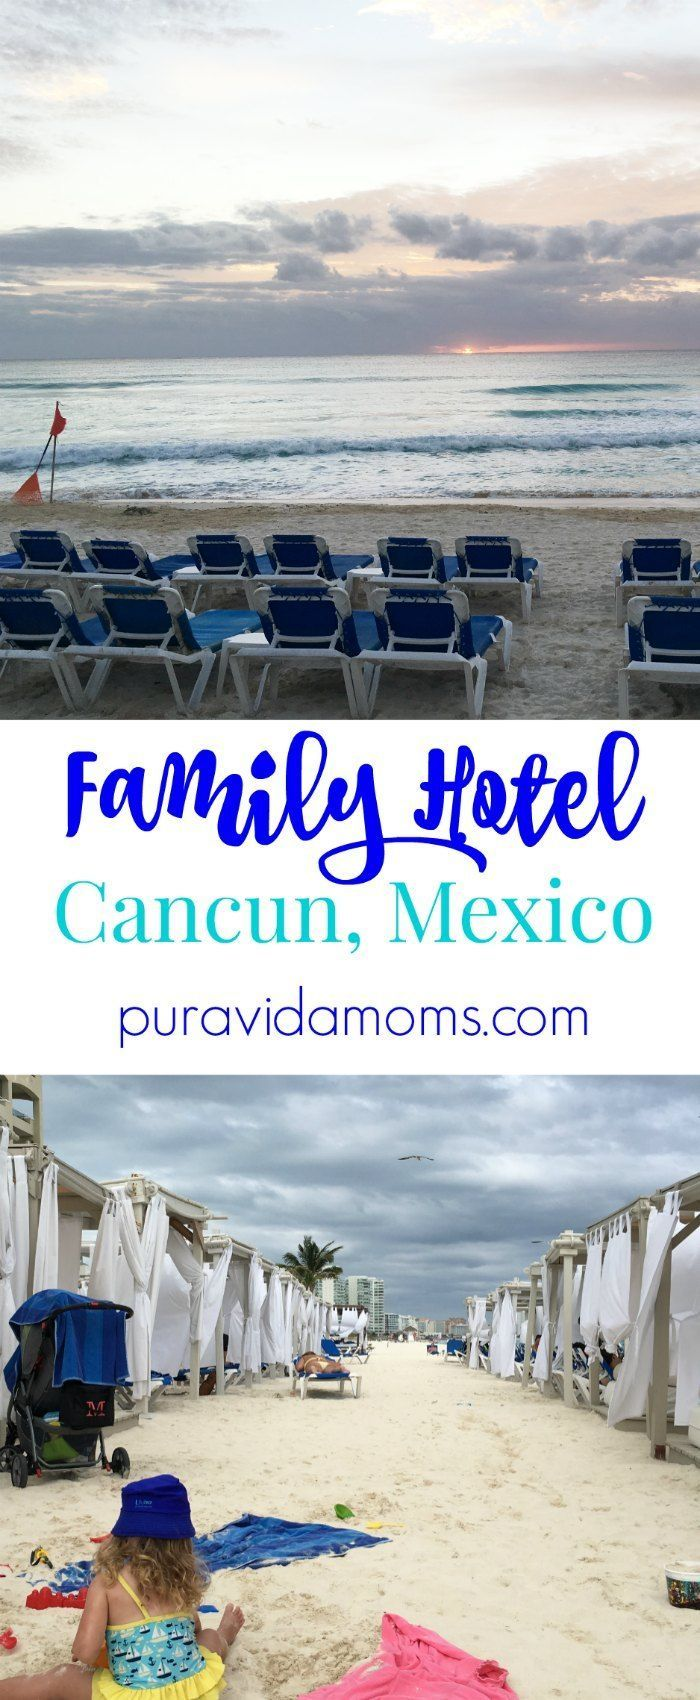 Hotel review of Hotel Gran Caribe Real in Cancun- and all the details for traveling with young children and family.